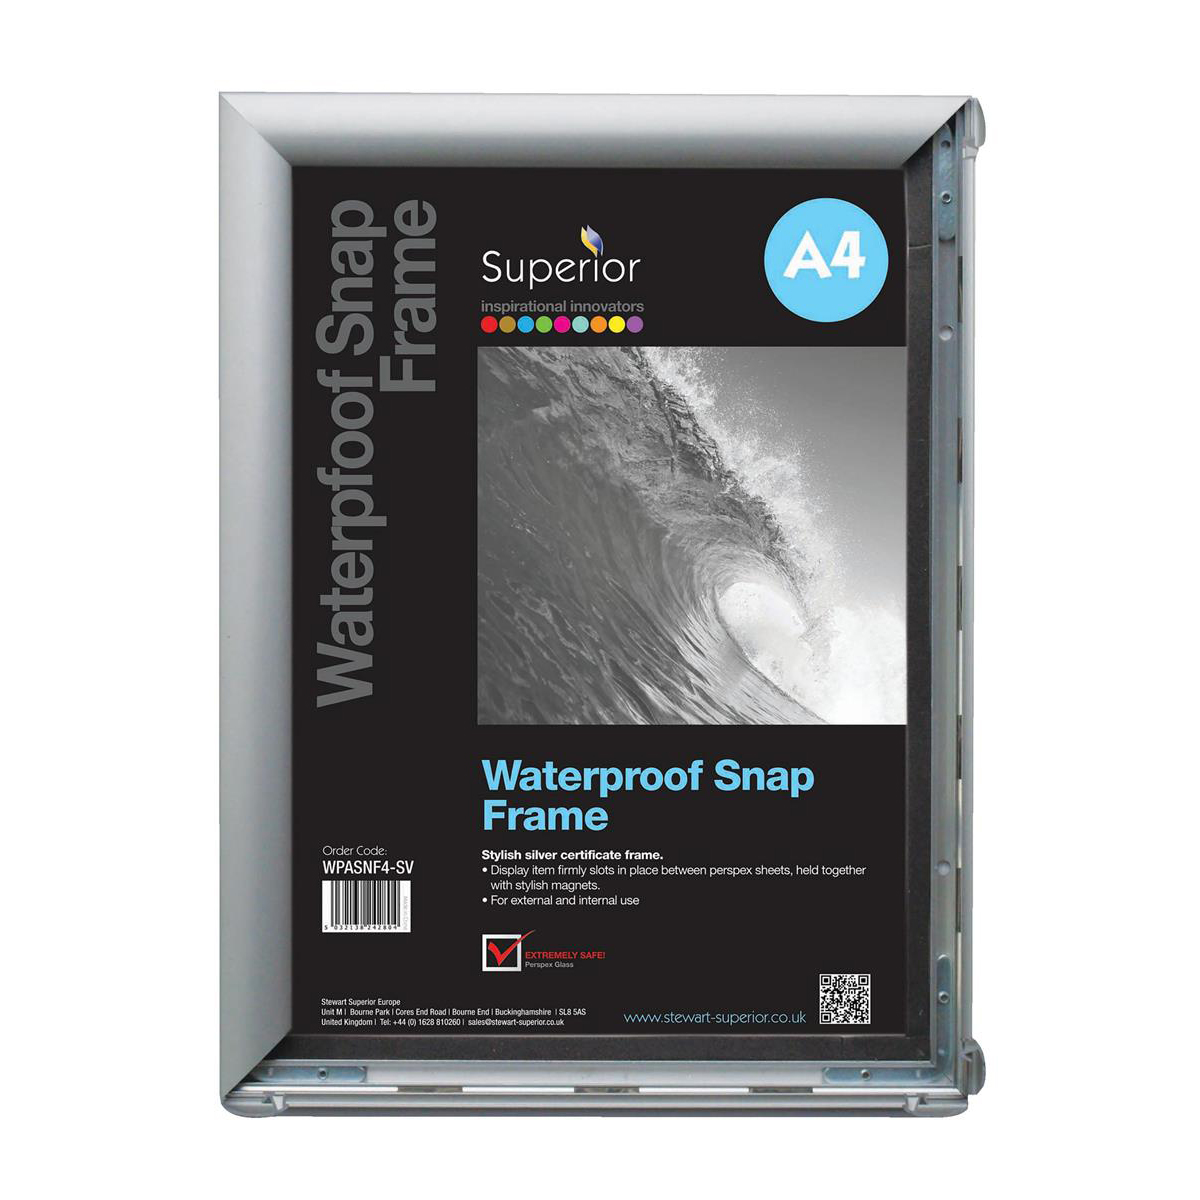 Waterproof Snap Frame PVC Anti-glare Cover Includes Screw Kit Rubber Seal A4 280x30x367mm Silver